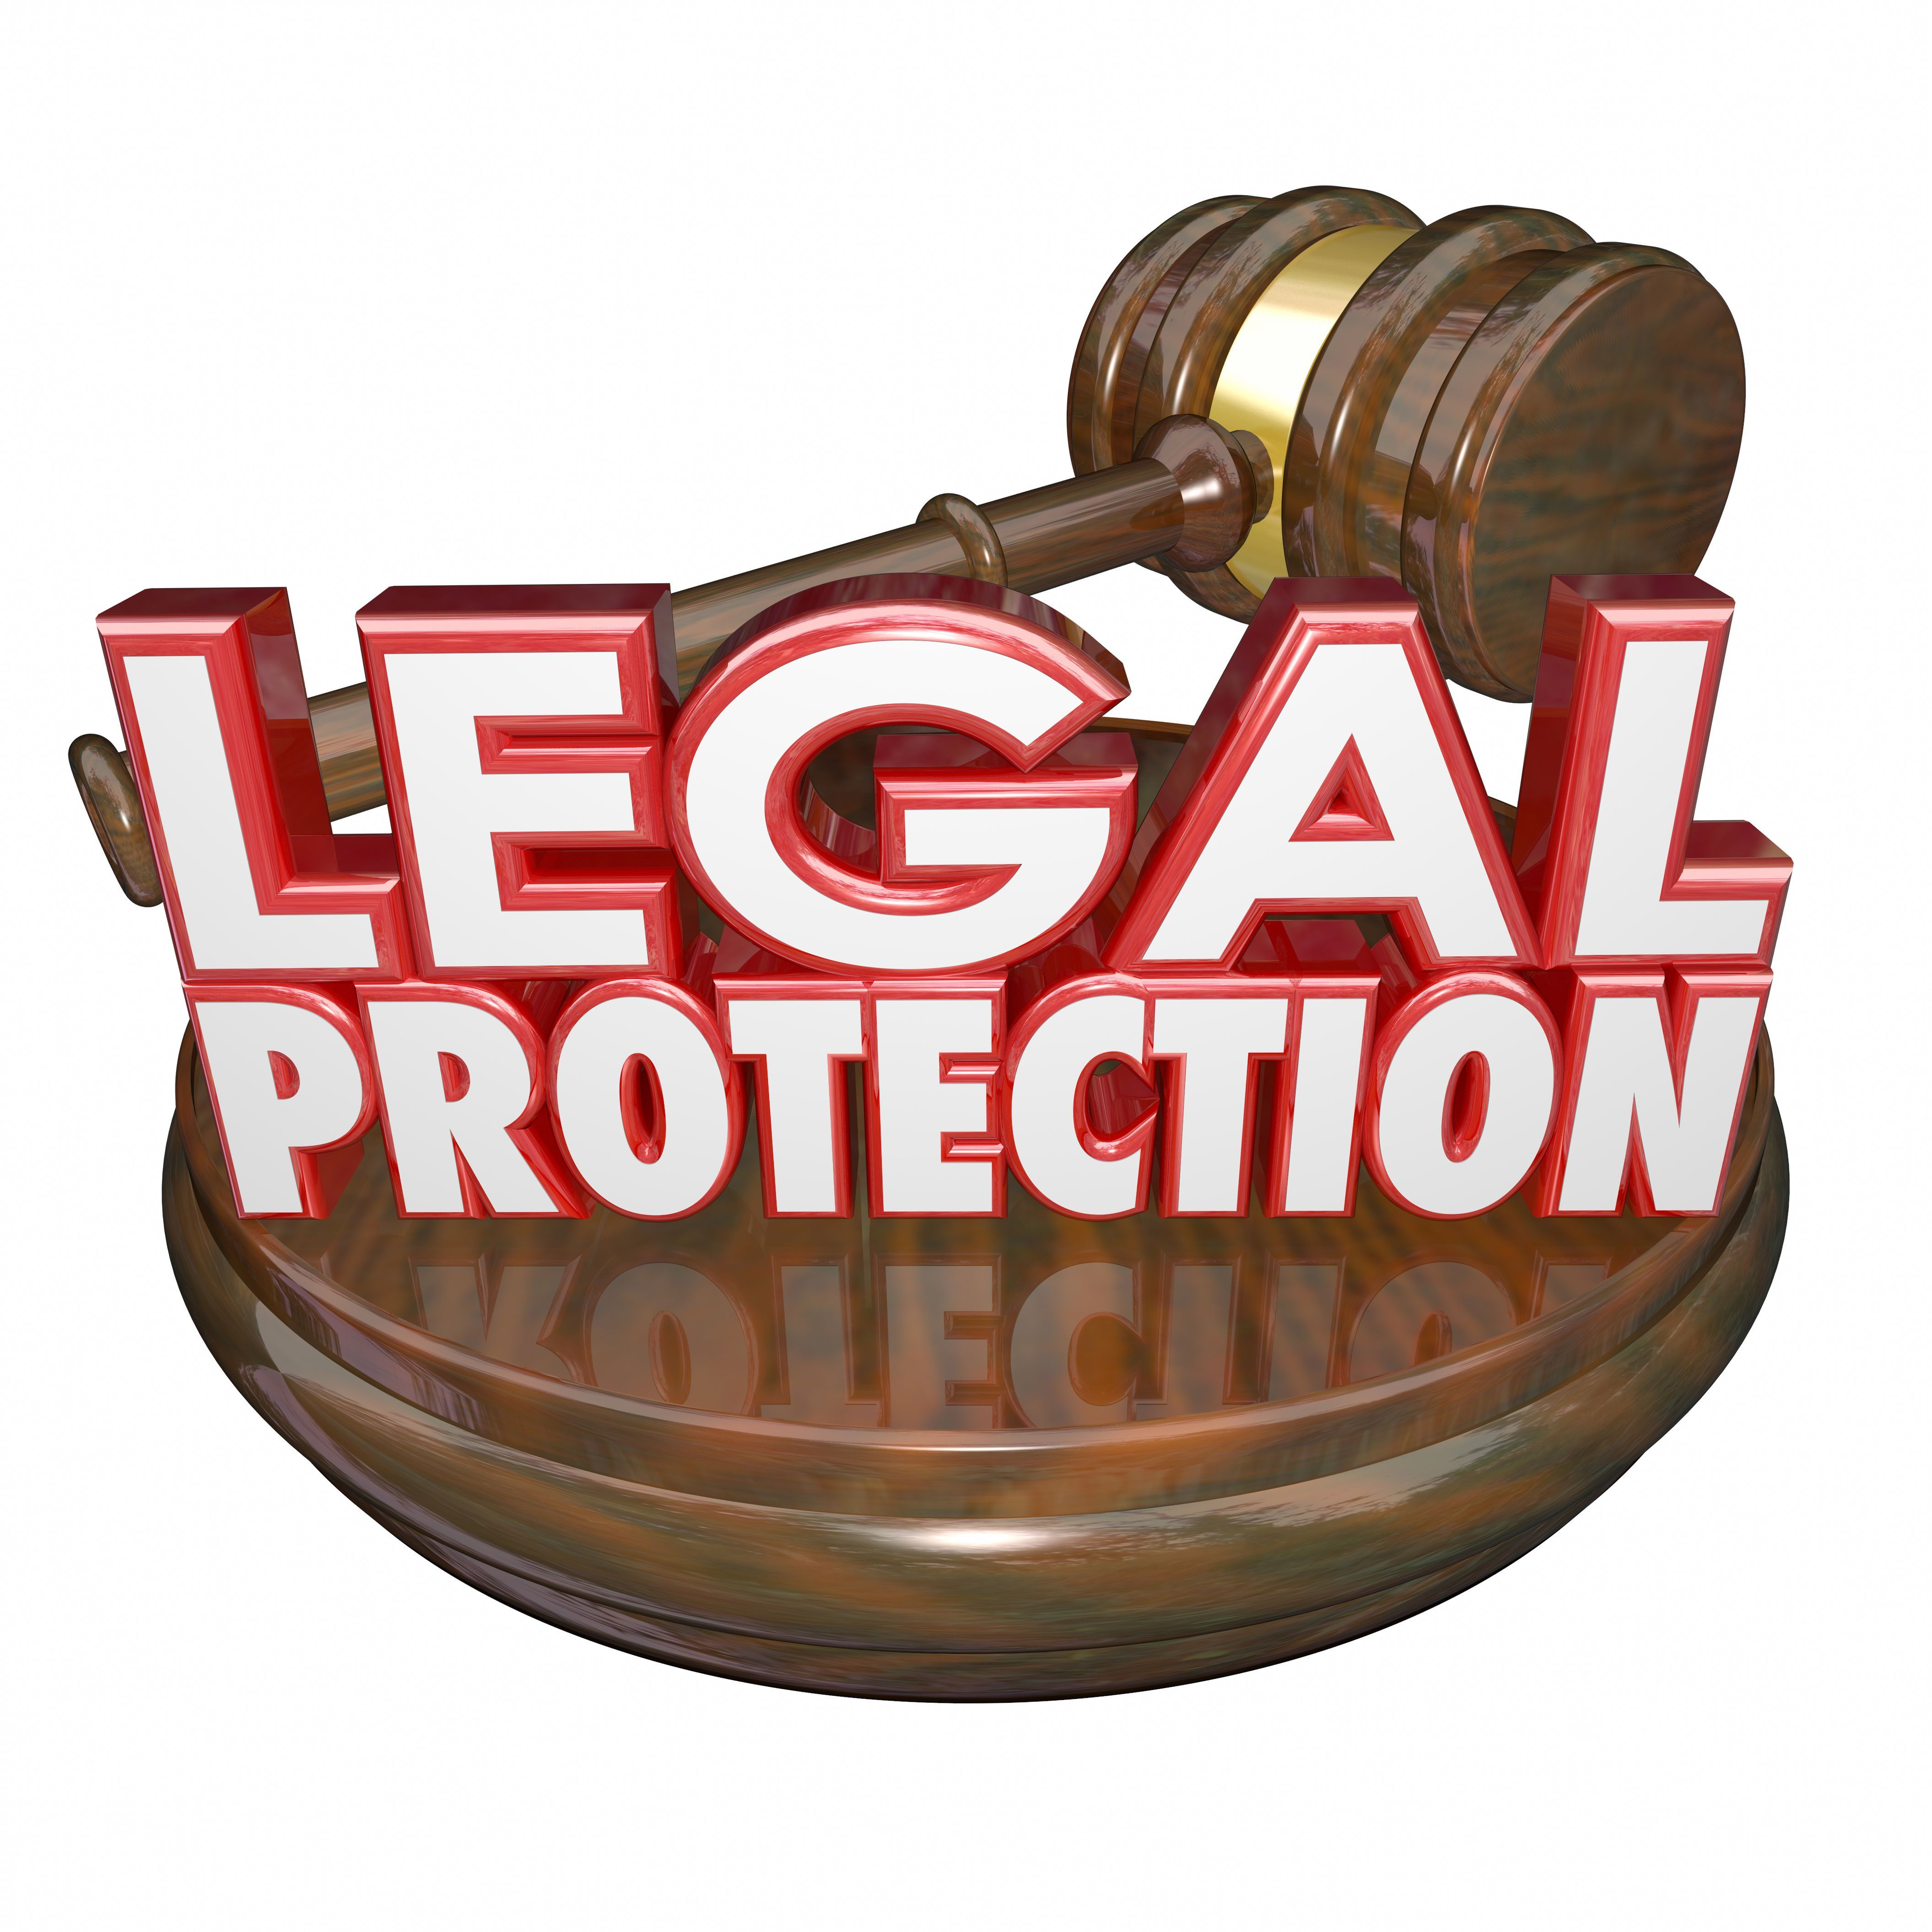 Protect against Legal Action with an IVA - IVA Information